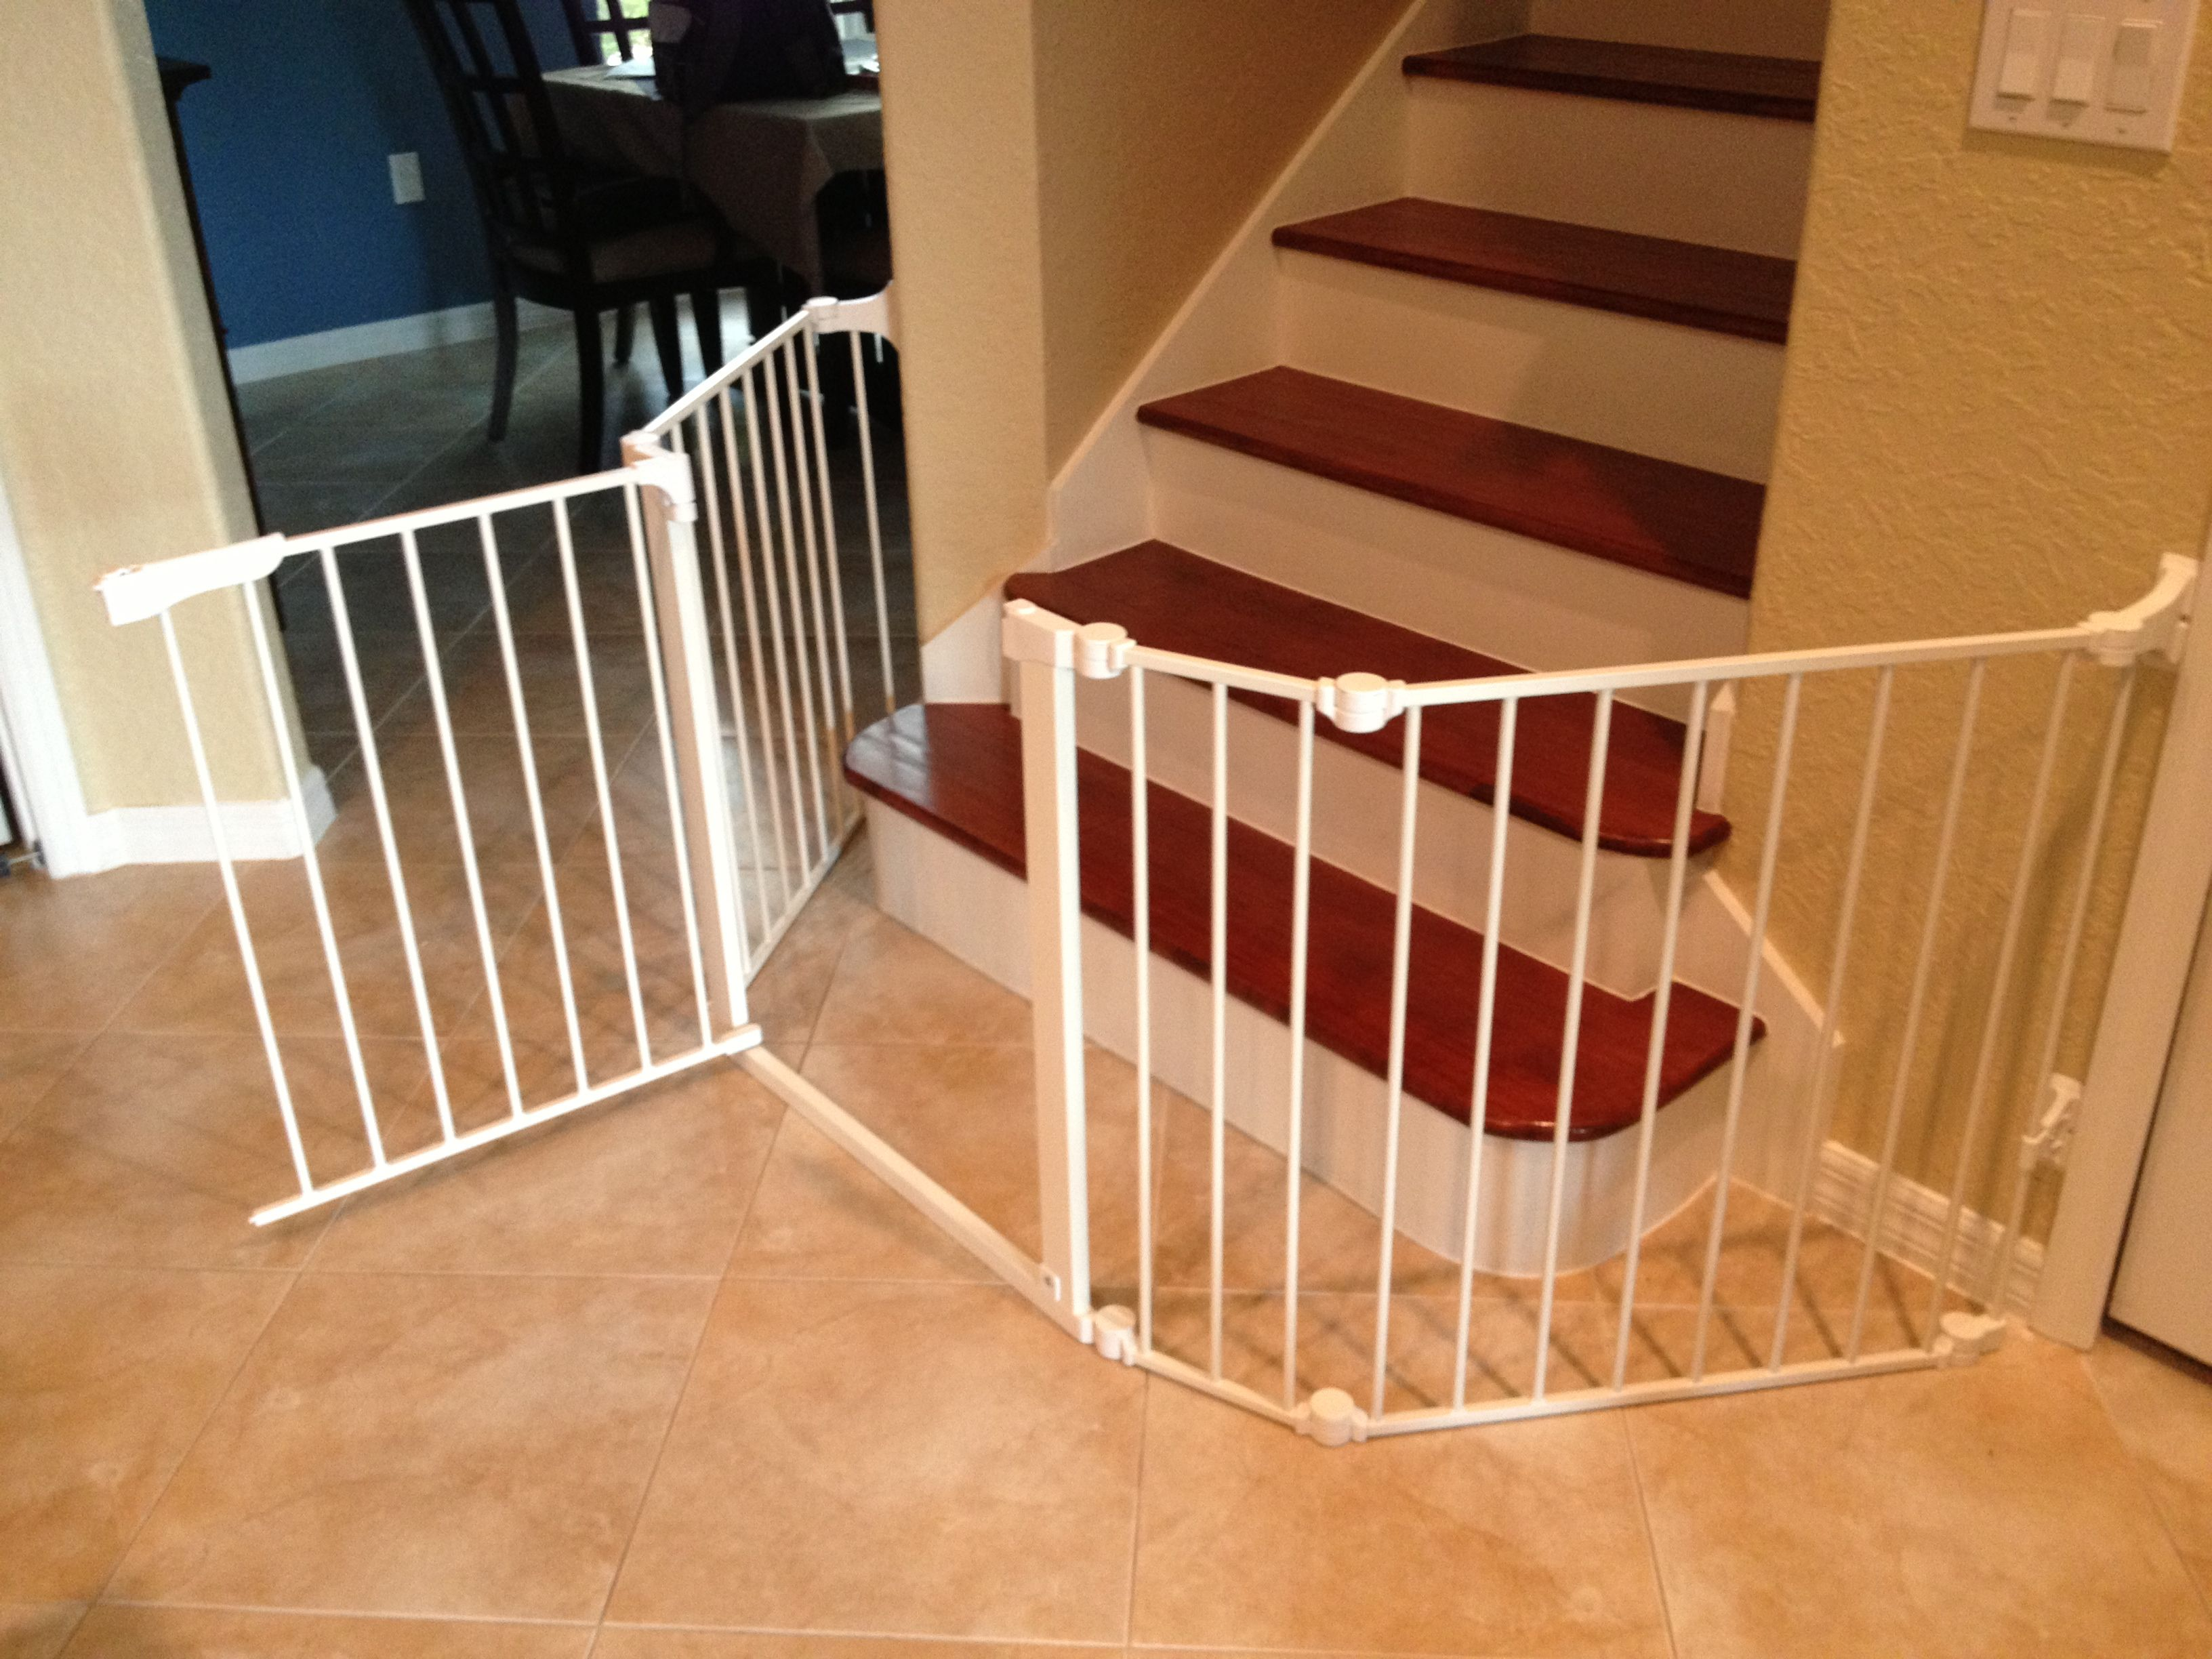 Baby Gate Bottom Of Stairs Baby Gates Baby Gate For Stairs Diy Baby Gate